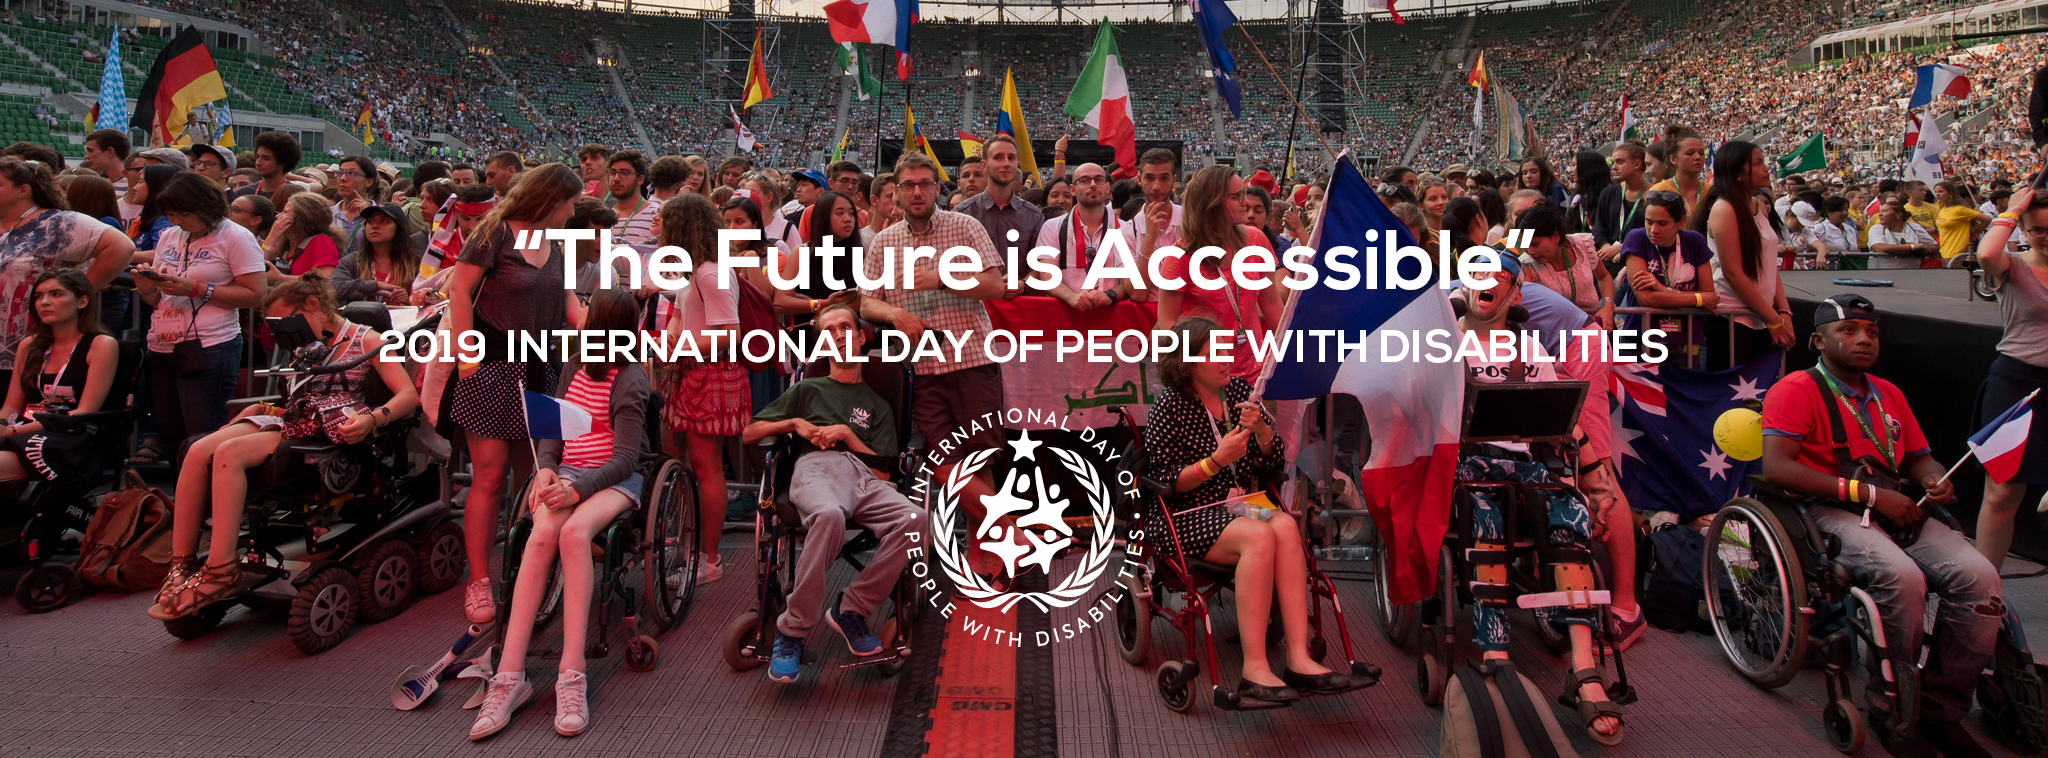 International Day of People With Disabilities the Future is Accessible Banner